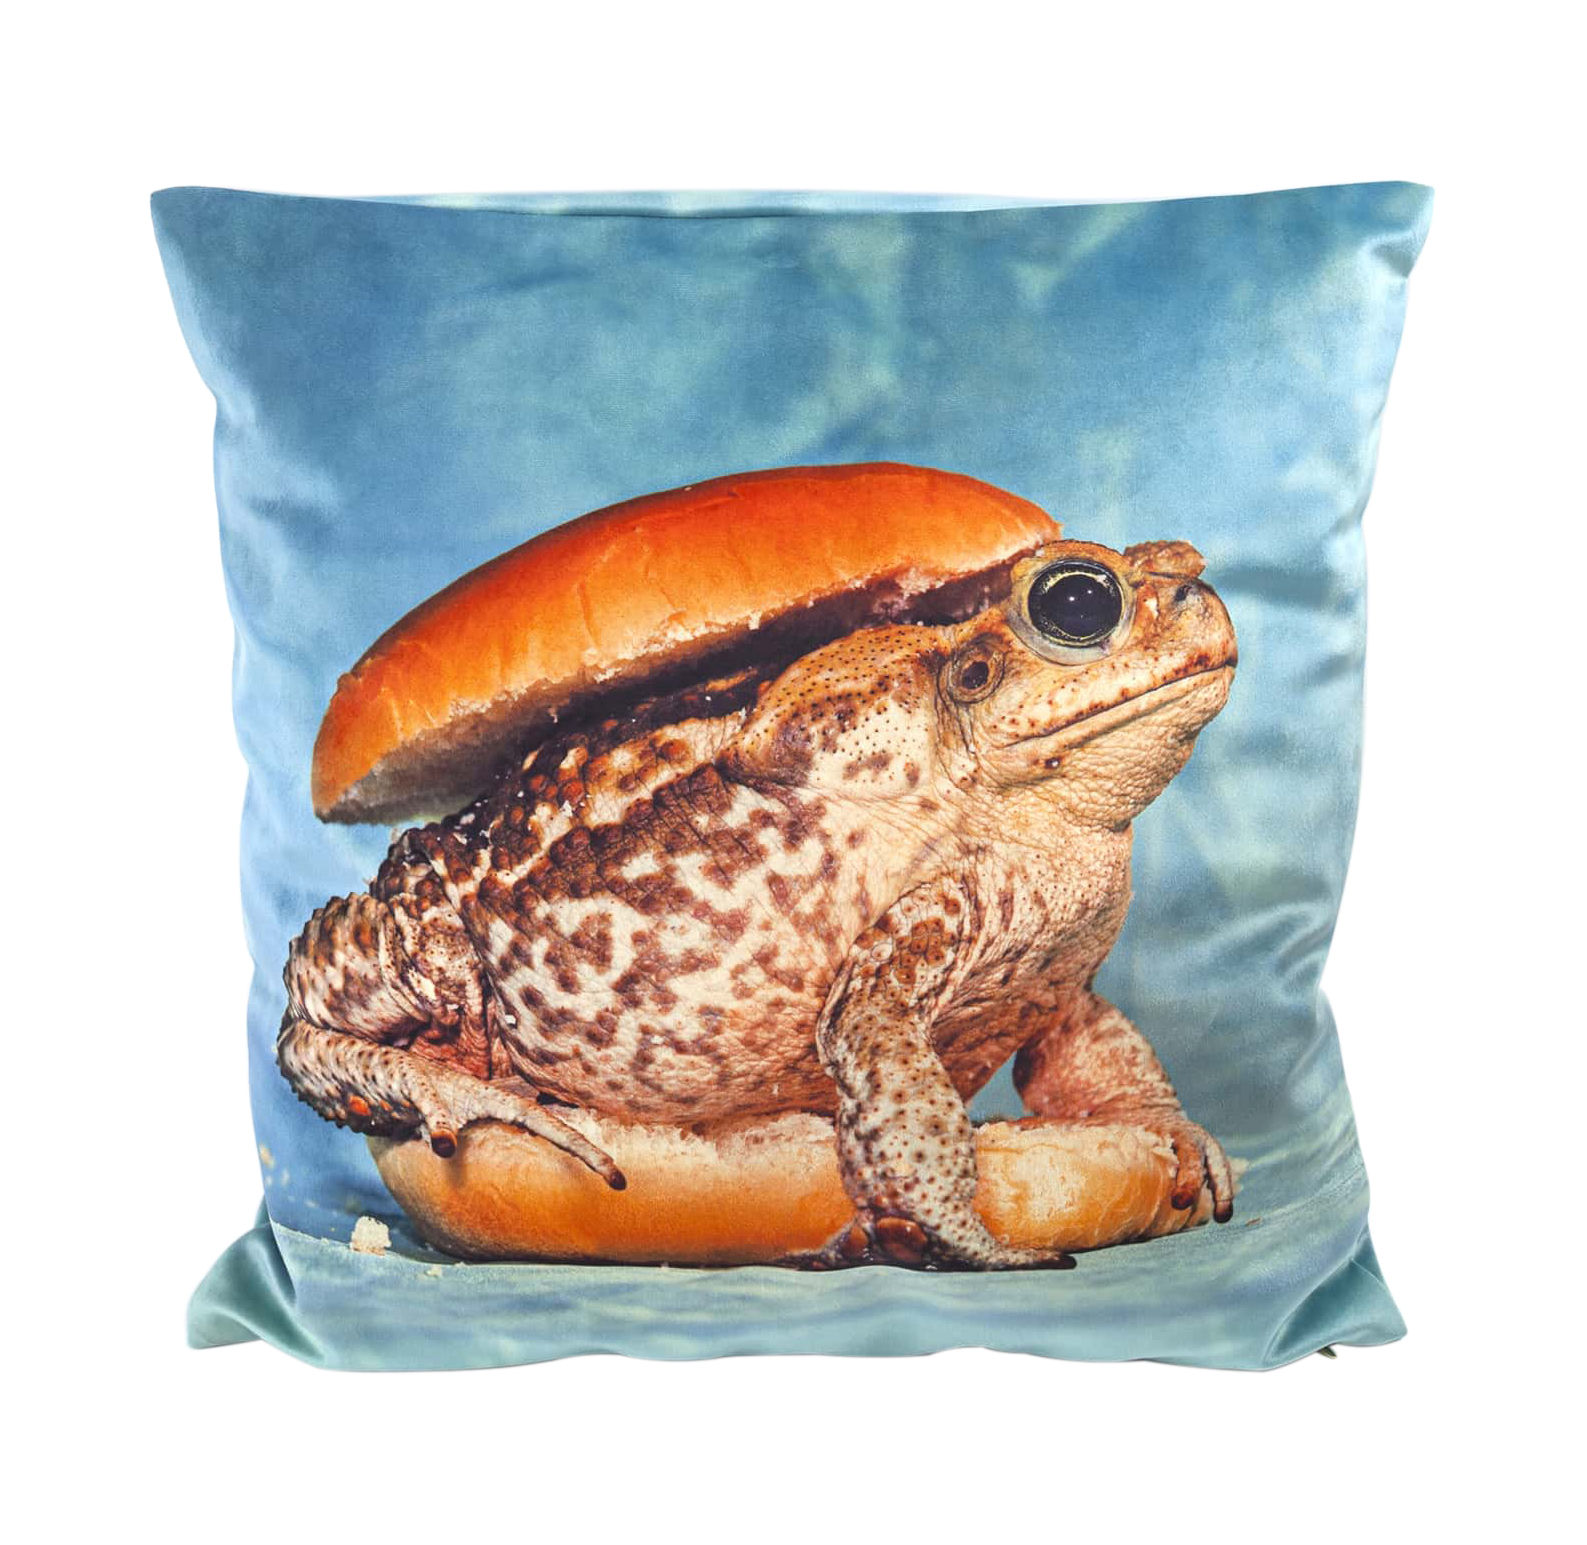 Déco - Coussins - Coussin Toiletpaper / Crapaud - 50 x 50 cm - Seletti - Crapaud / Bleu - Plume, Tissu polyester